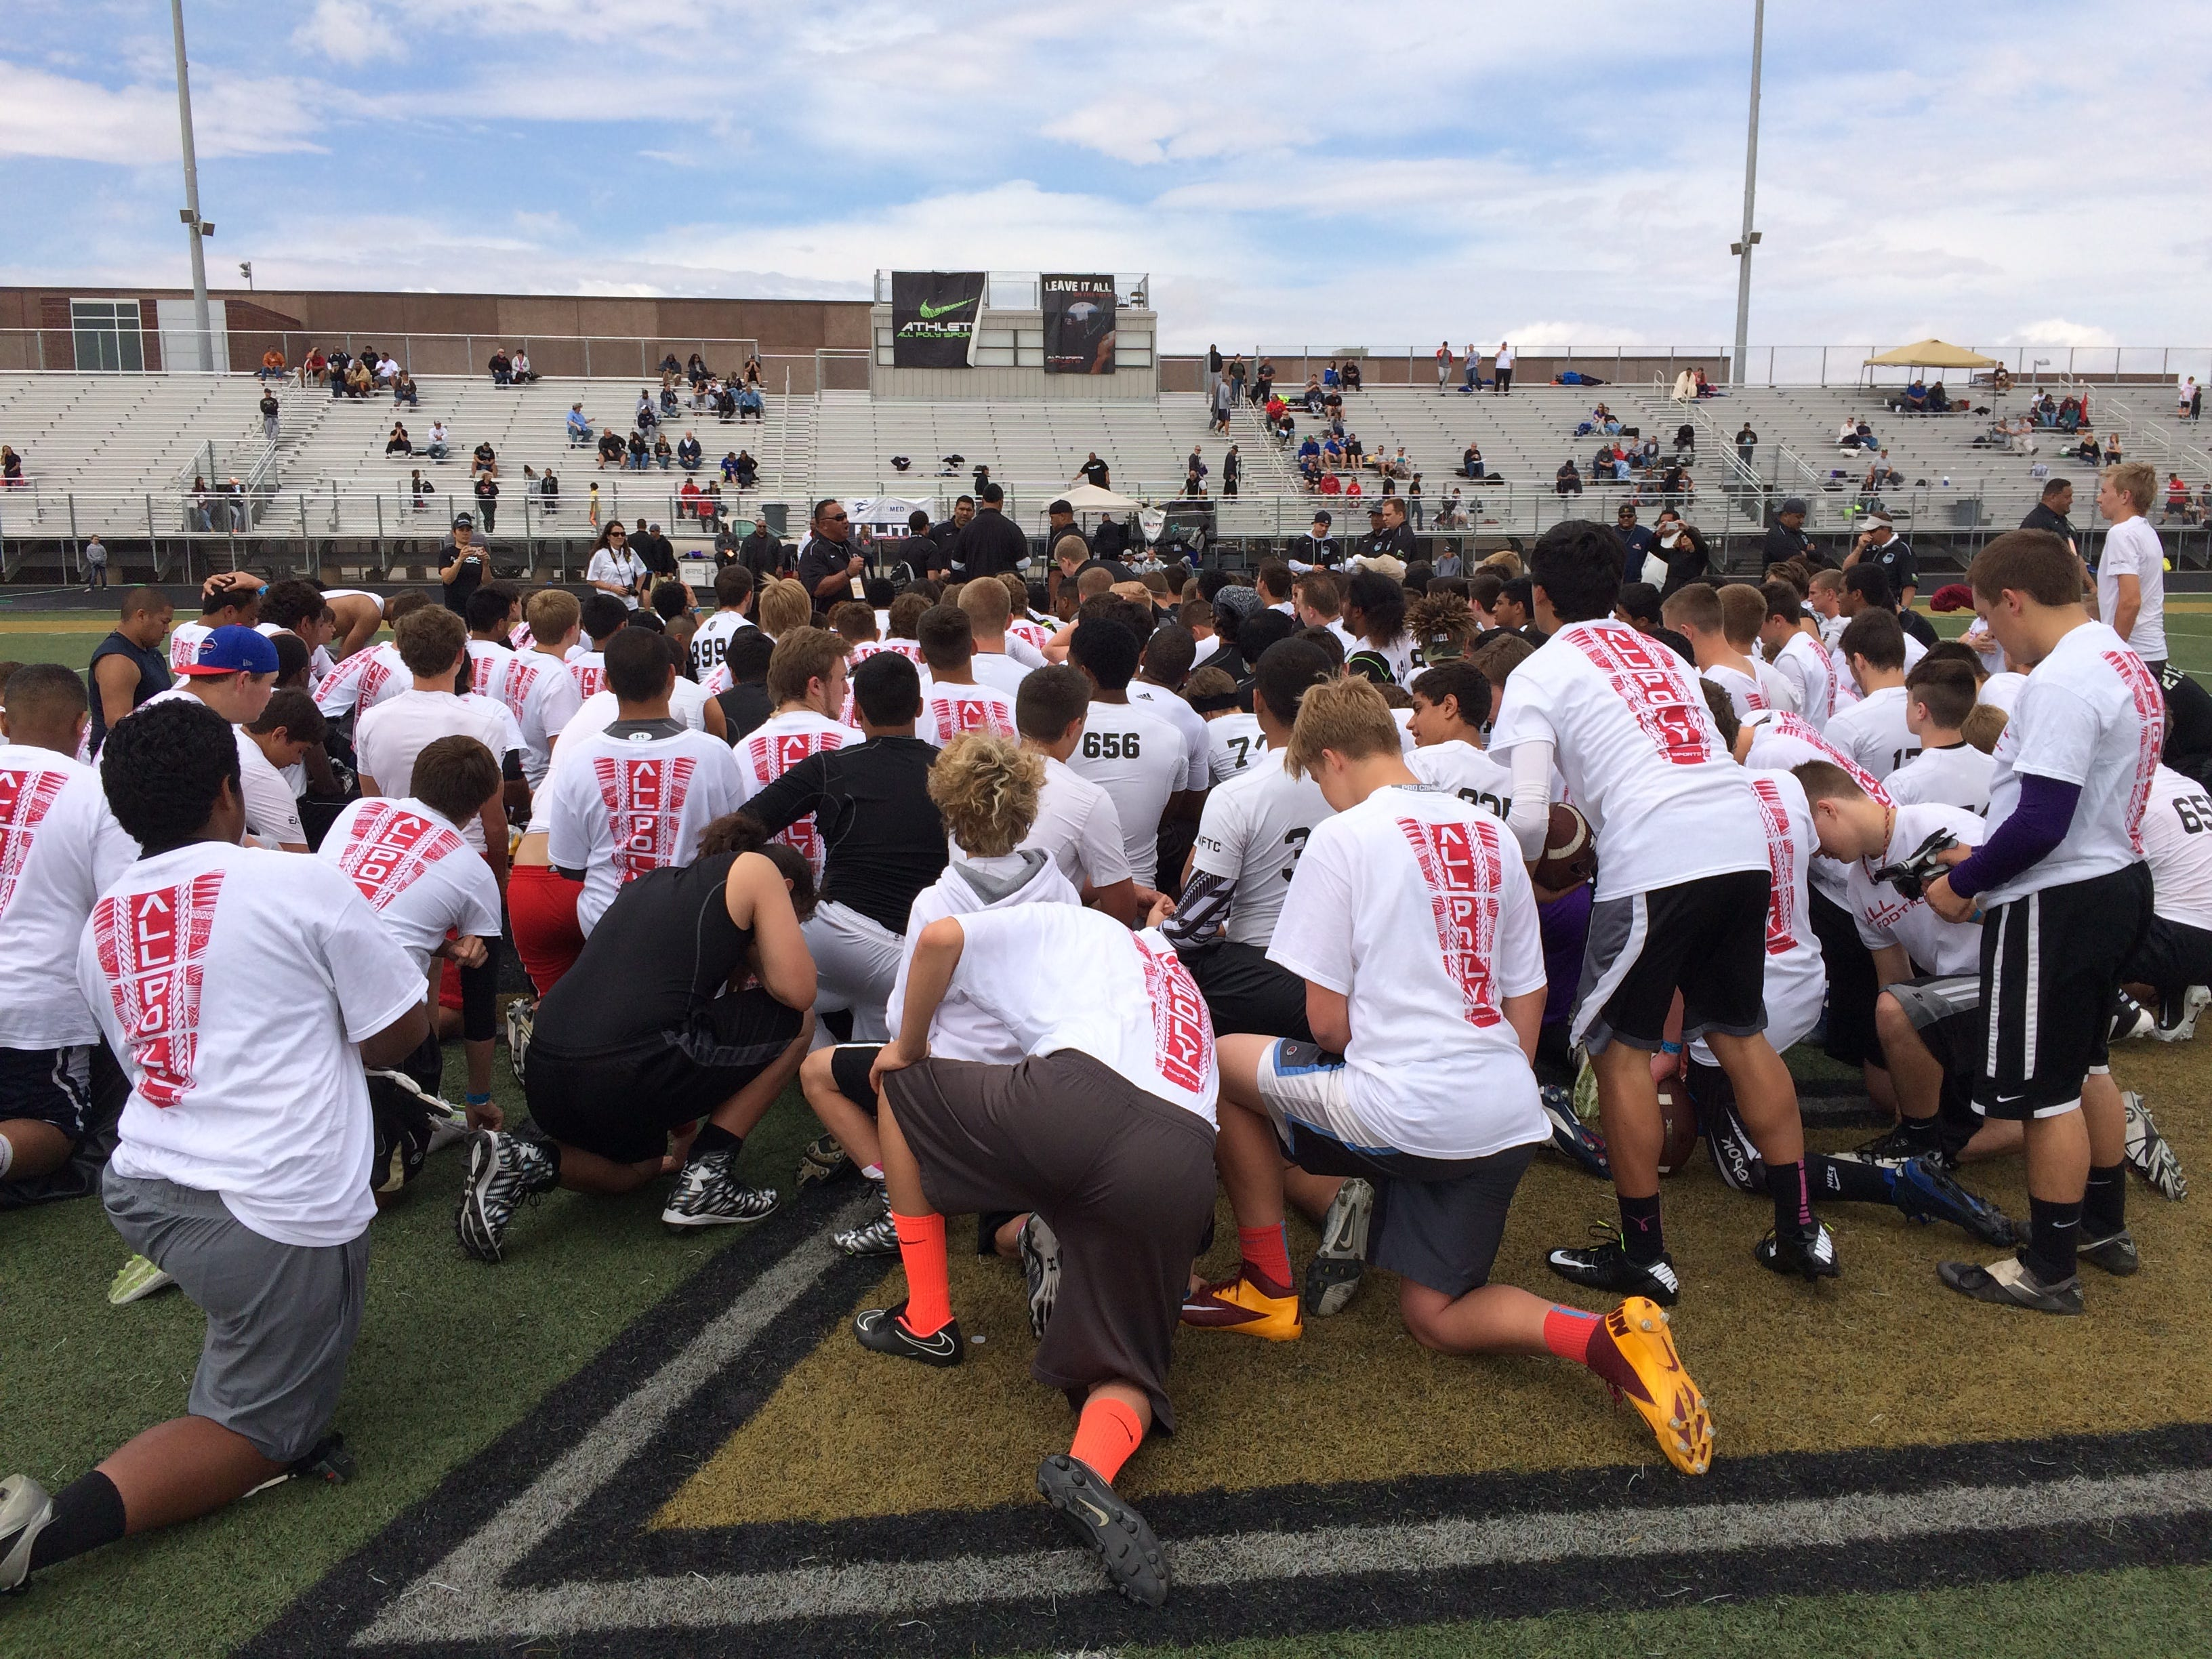 The All Poly Camp started out with just 30 athletes, and is now one of the top football camps in the entire country. More than 250 players participated Friday and Saturday at Desert hills High School.